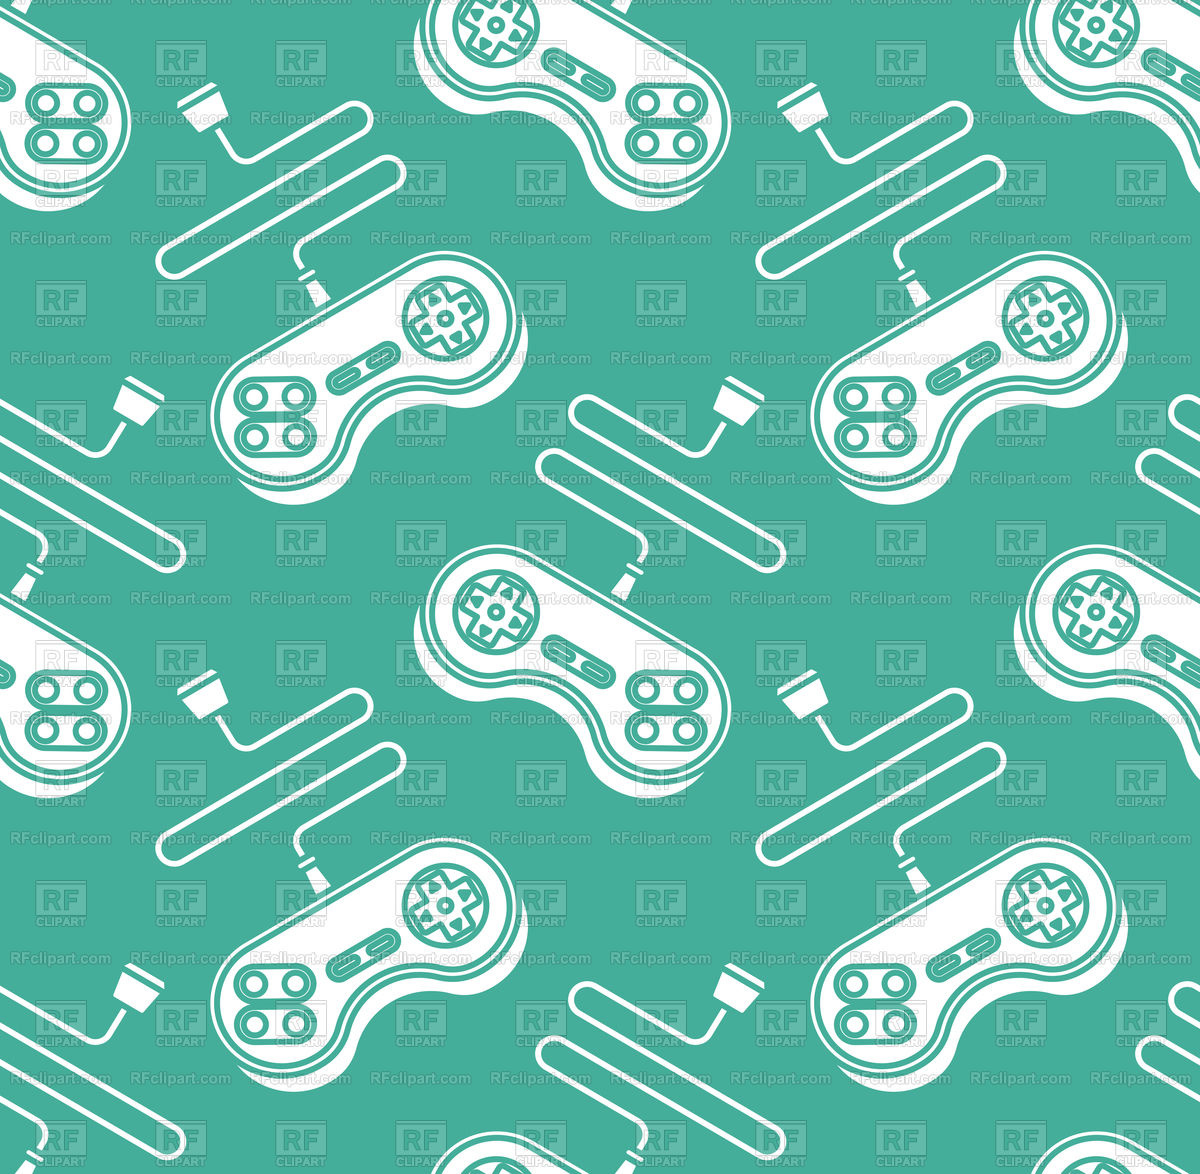 Joystick seamless pattern on green background Vector Image of 1200x1174